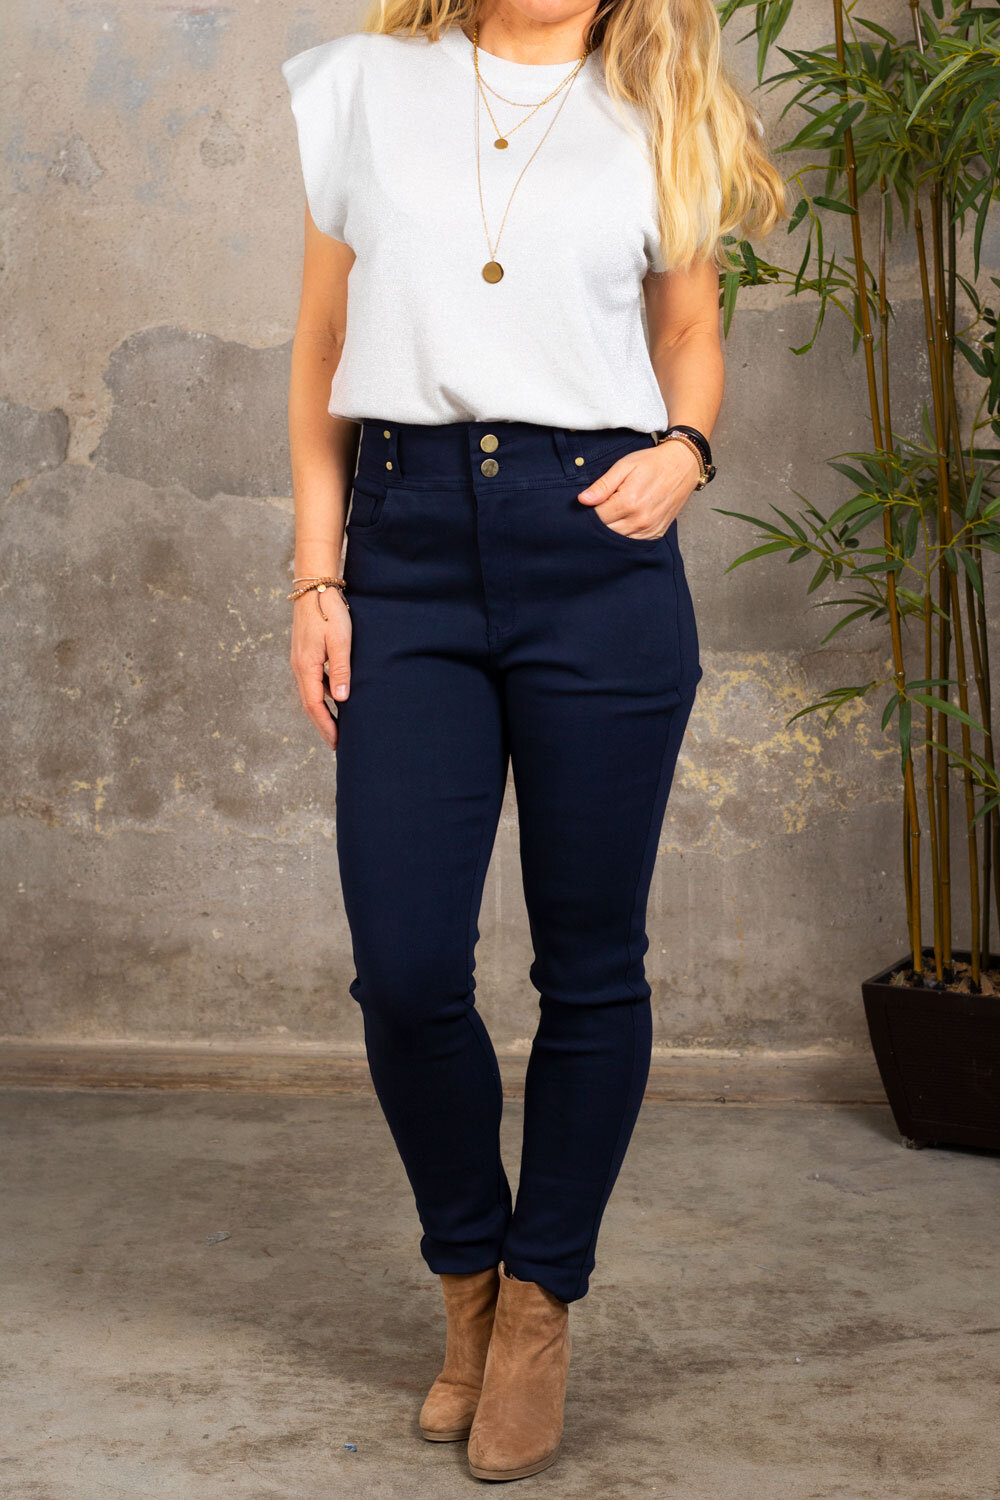 Trousers with Gold Details - NL83045 - Navy